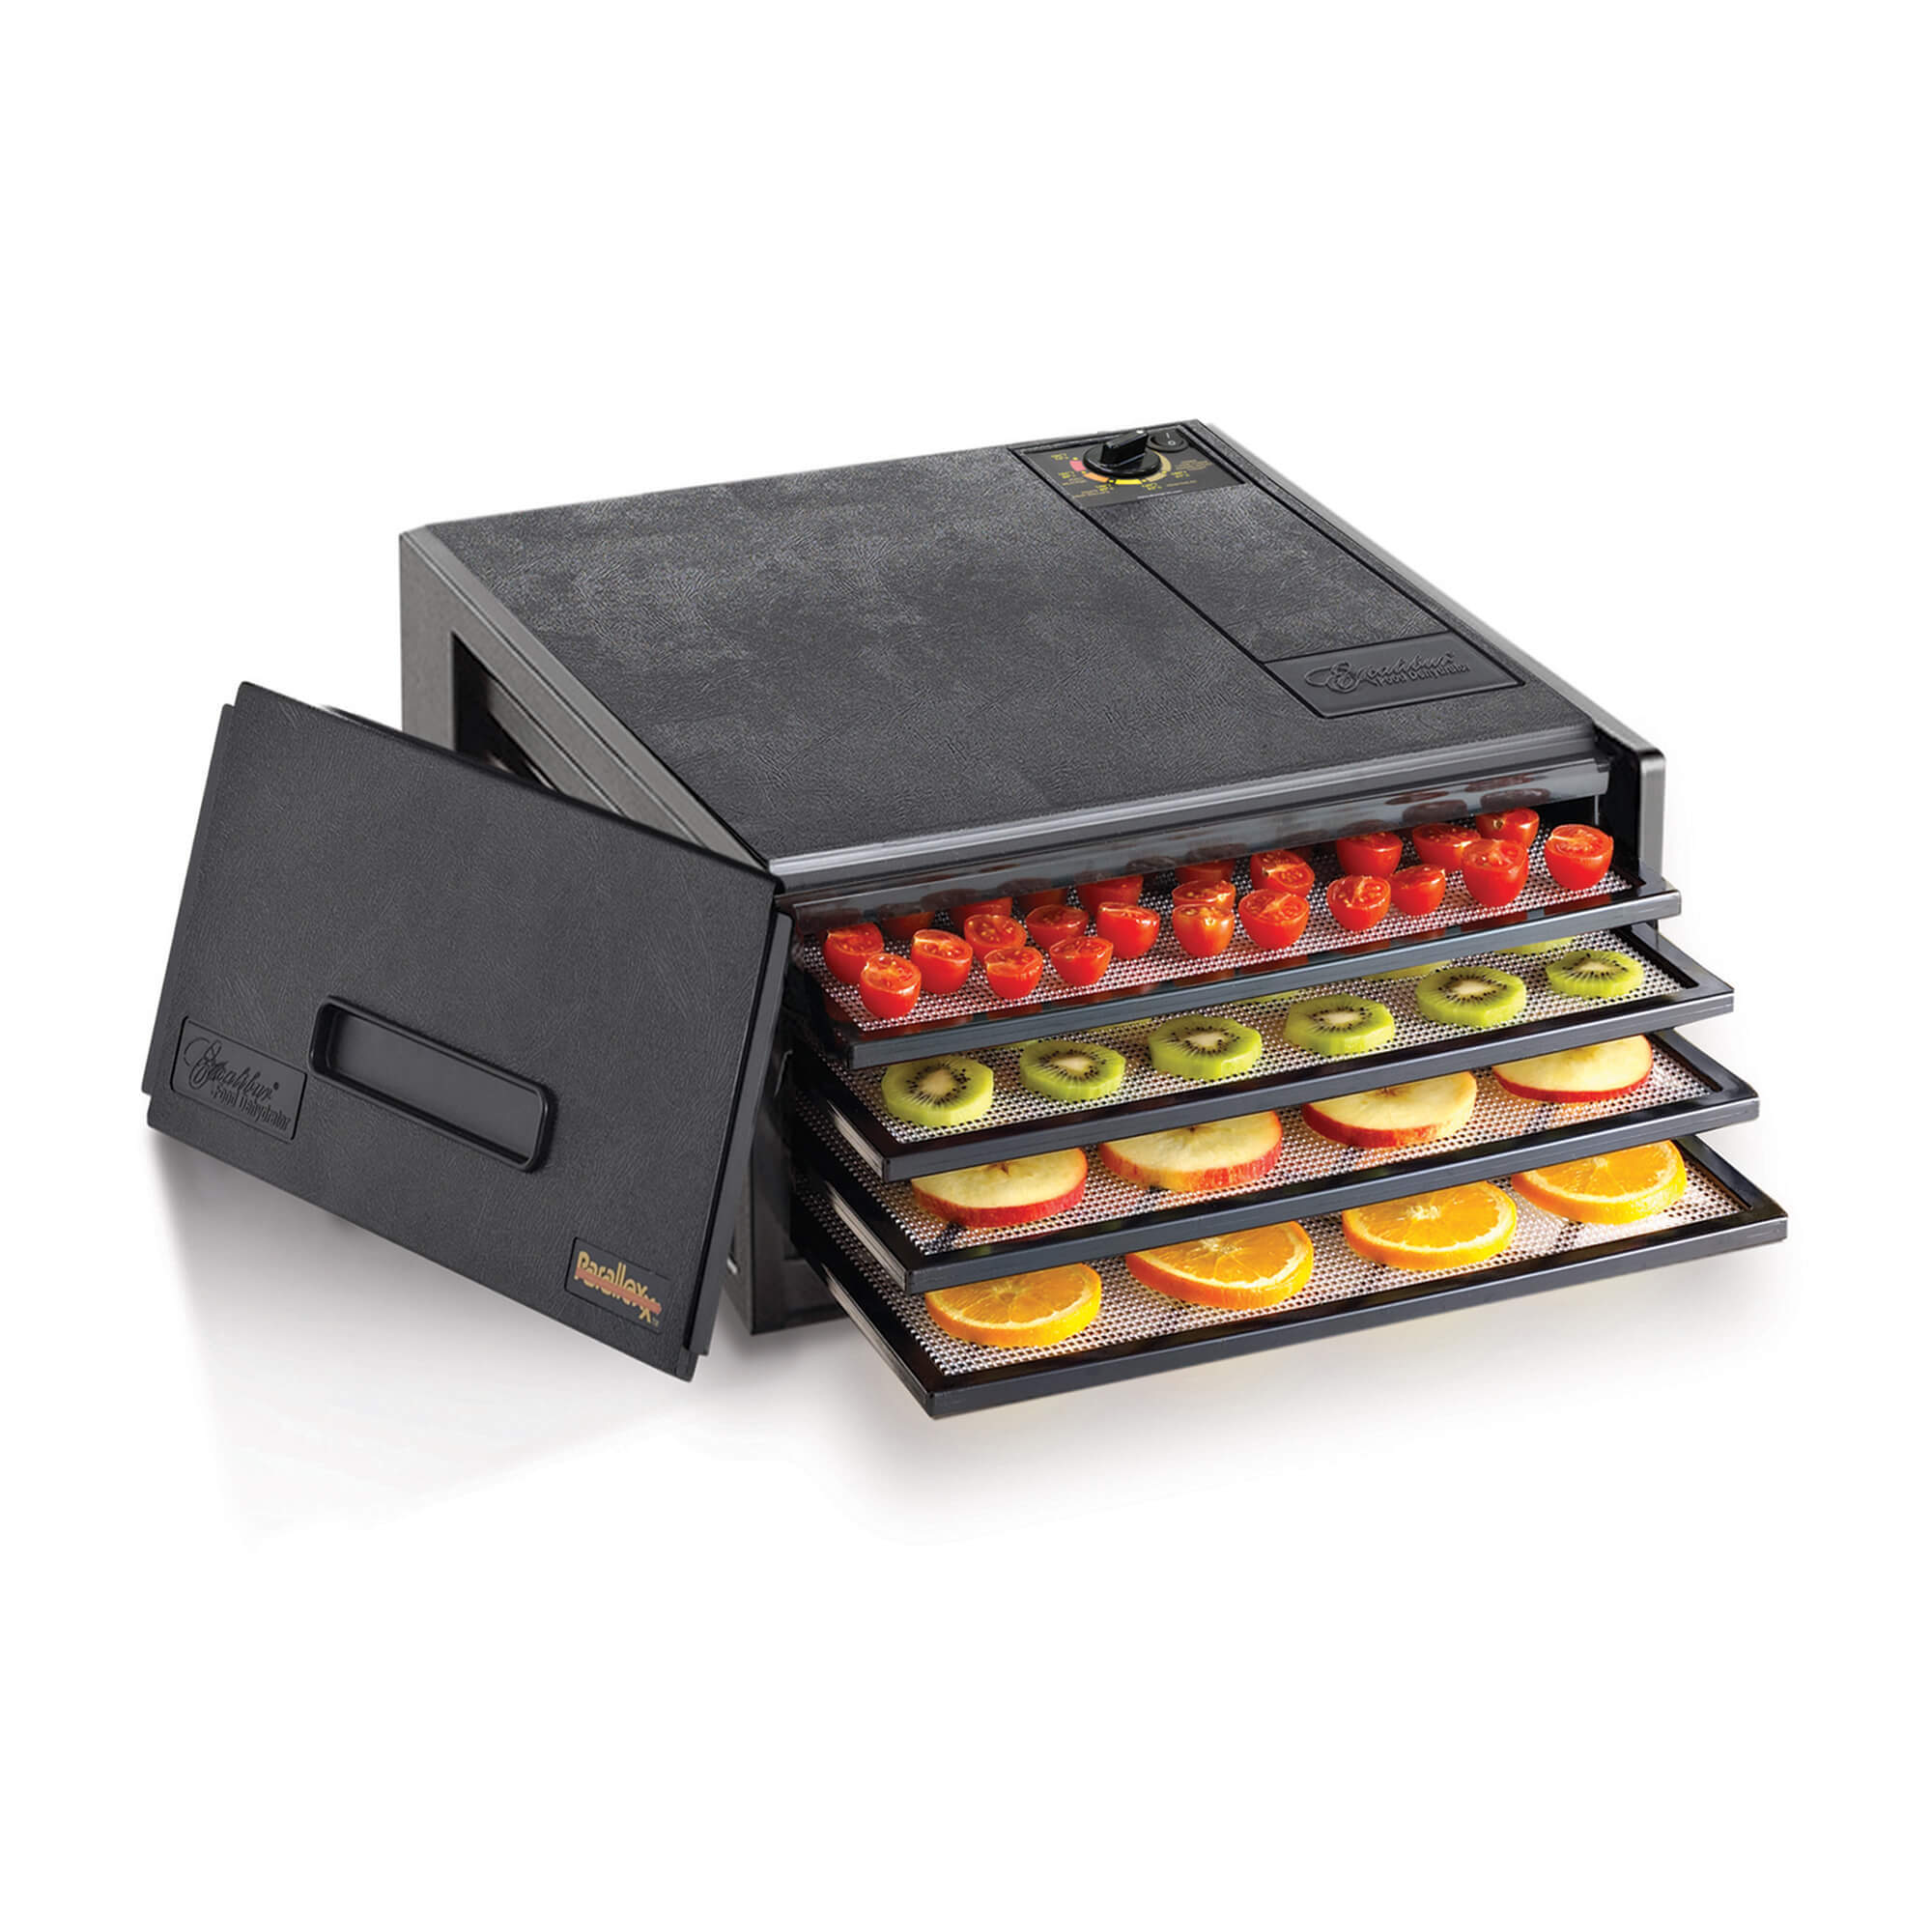 Excalibur 4400 4 tray compact dehydrator with door propped to the side and food on the trays.